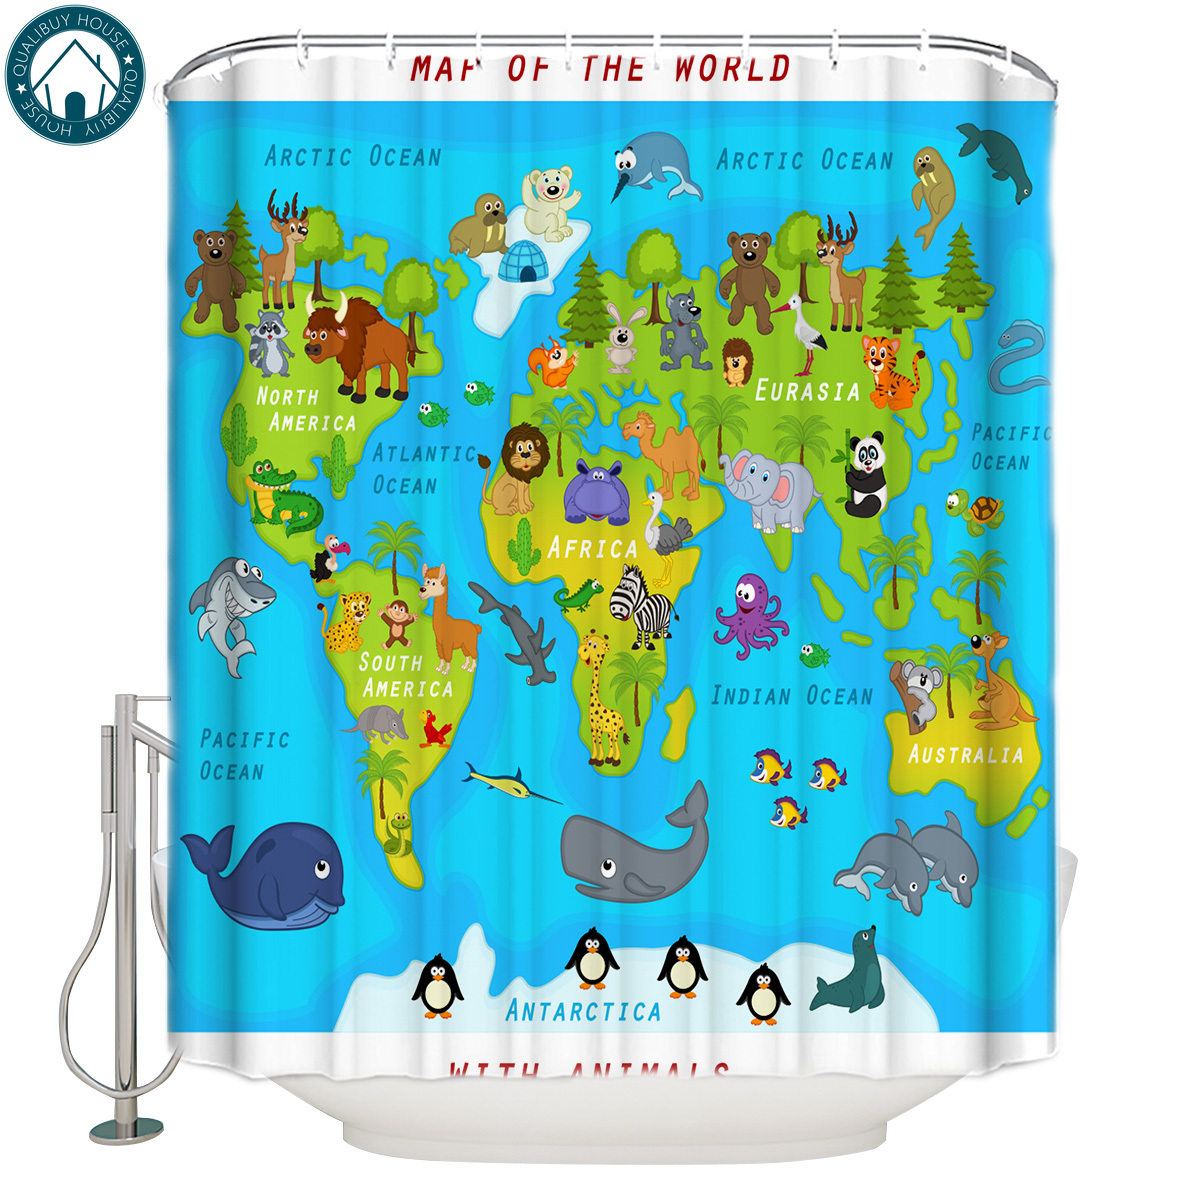 Qualibuy House Store  Map With Animals Australian Kangaroo Panda Squirrel Bathroom Shower Curtains Fabric Shower Curtains